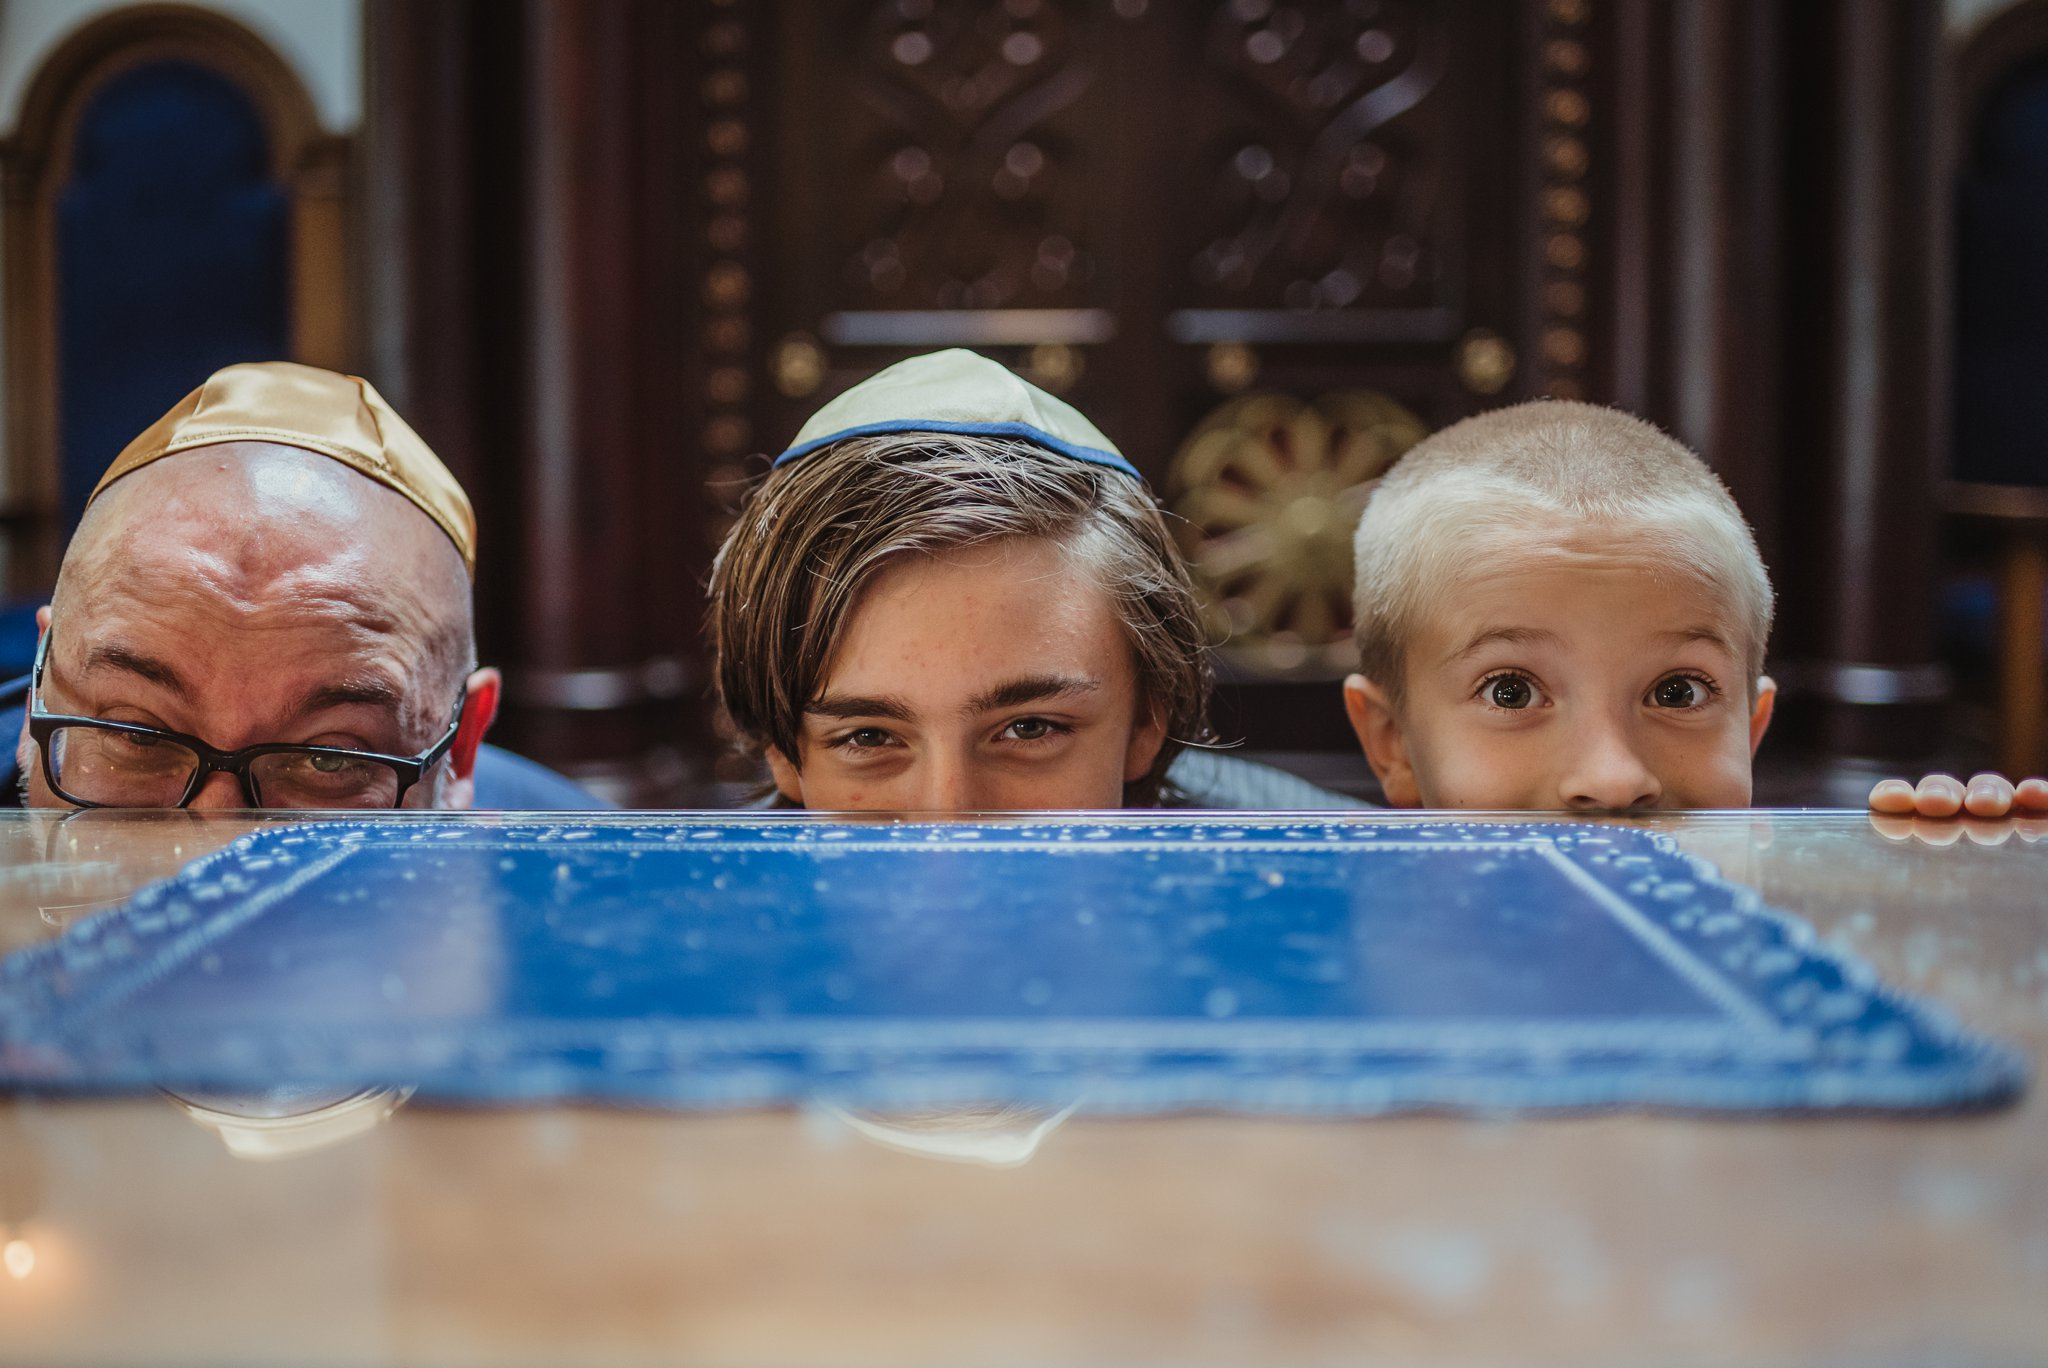 The bar mitzvah boy poses with his dad and brother for Rose Trail Images at Temple Beth Or in Raleigh, North Carolina.